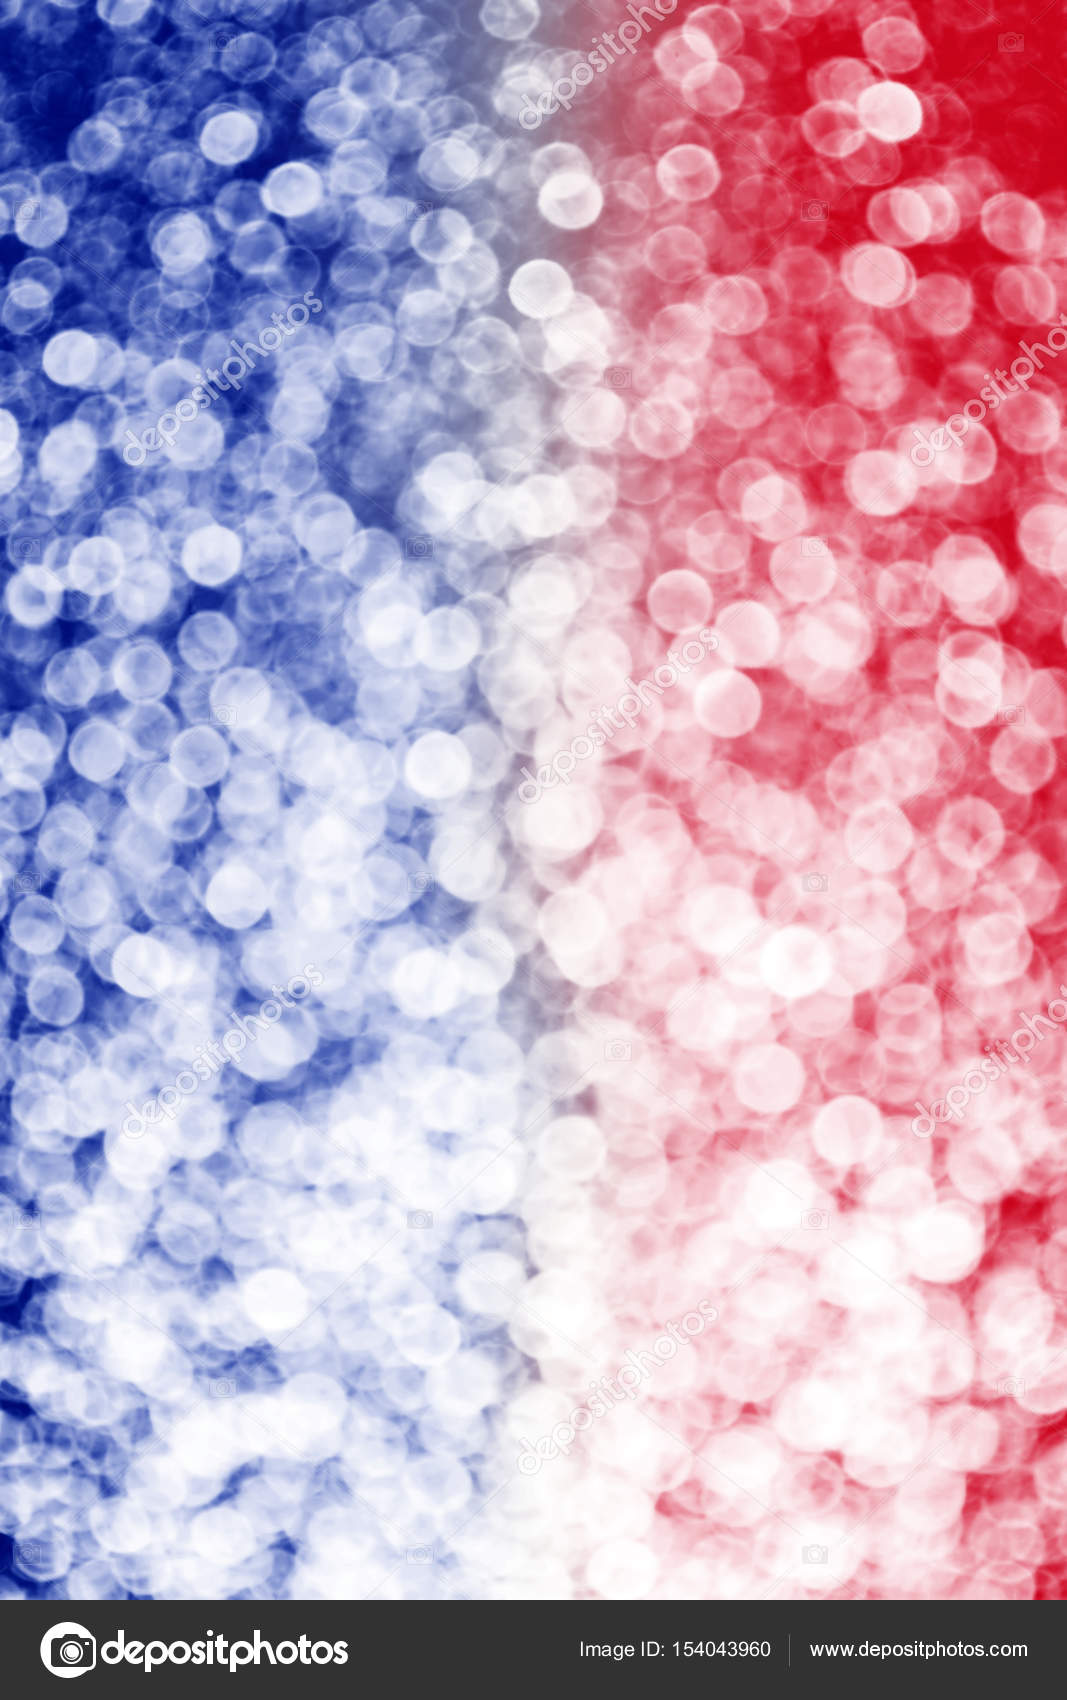 red white and blue blur sparkle background stock photo c steph zieber 154043960 depositphotos